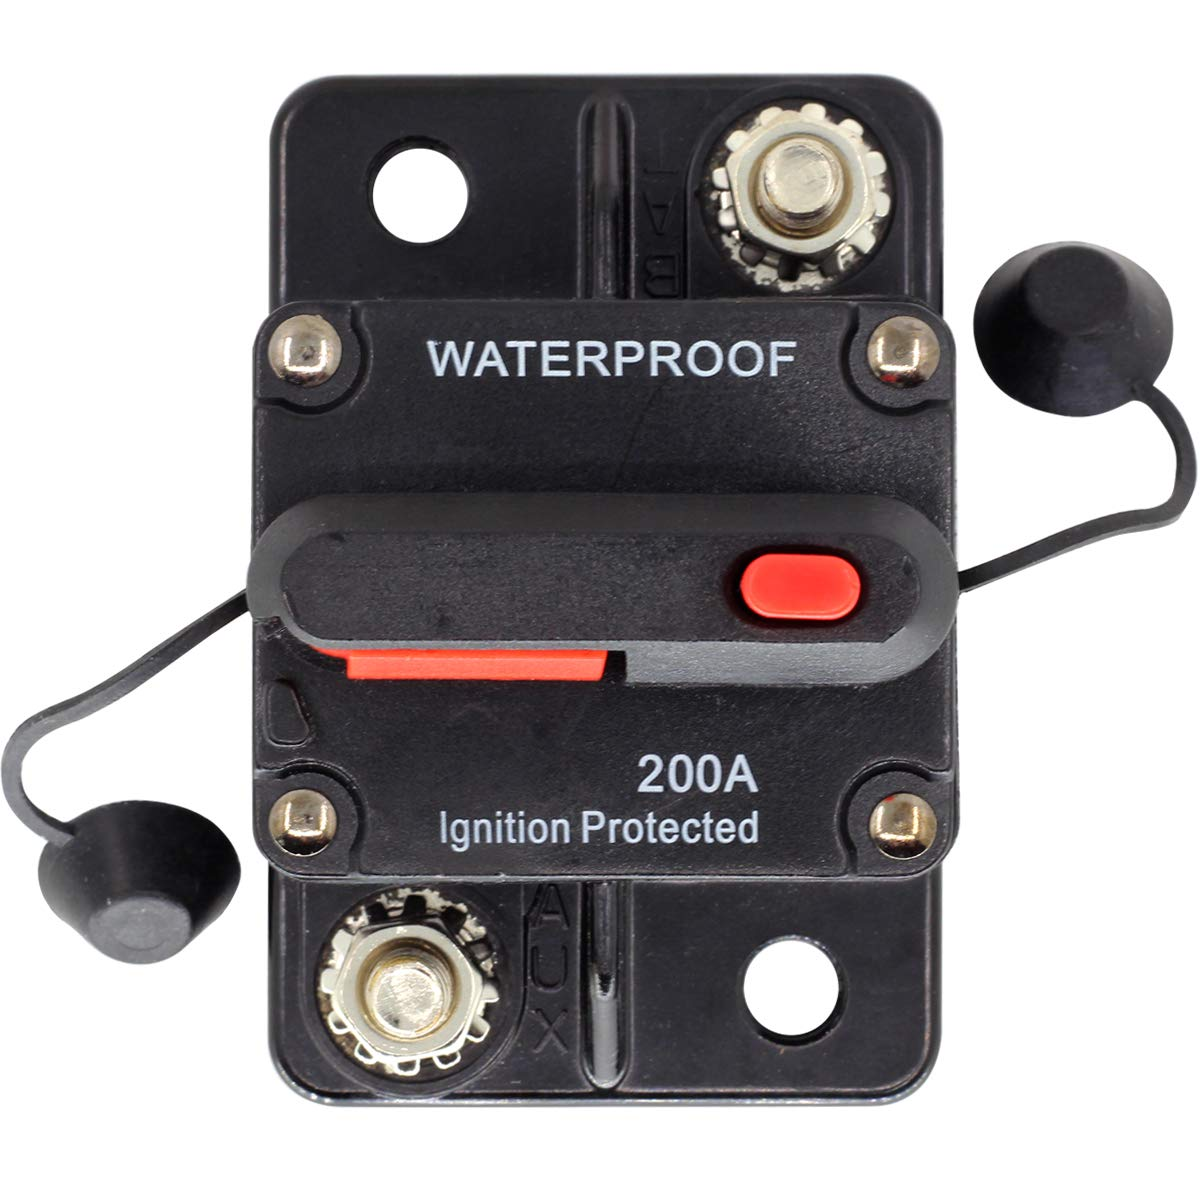 ZOOKOTO 12V 42VDC 200 Amp Circuit Breaker with Manual Reset for Car Truck Rv ATV Marine Boat Vehicles//Electronic Systems